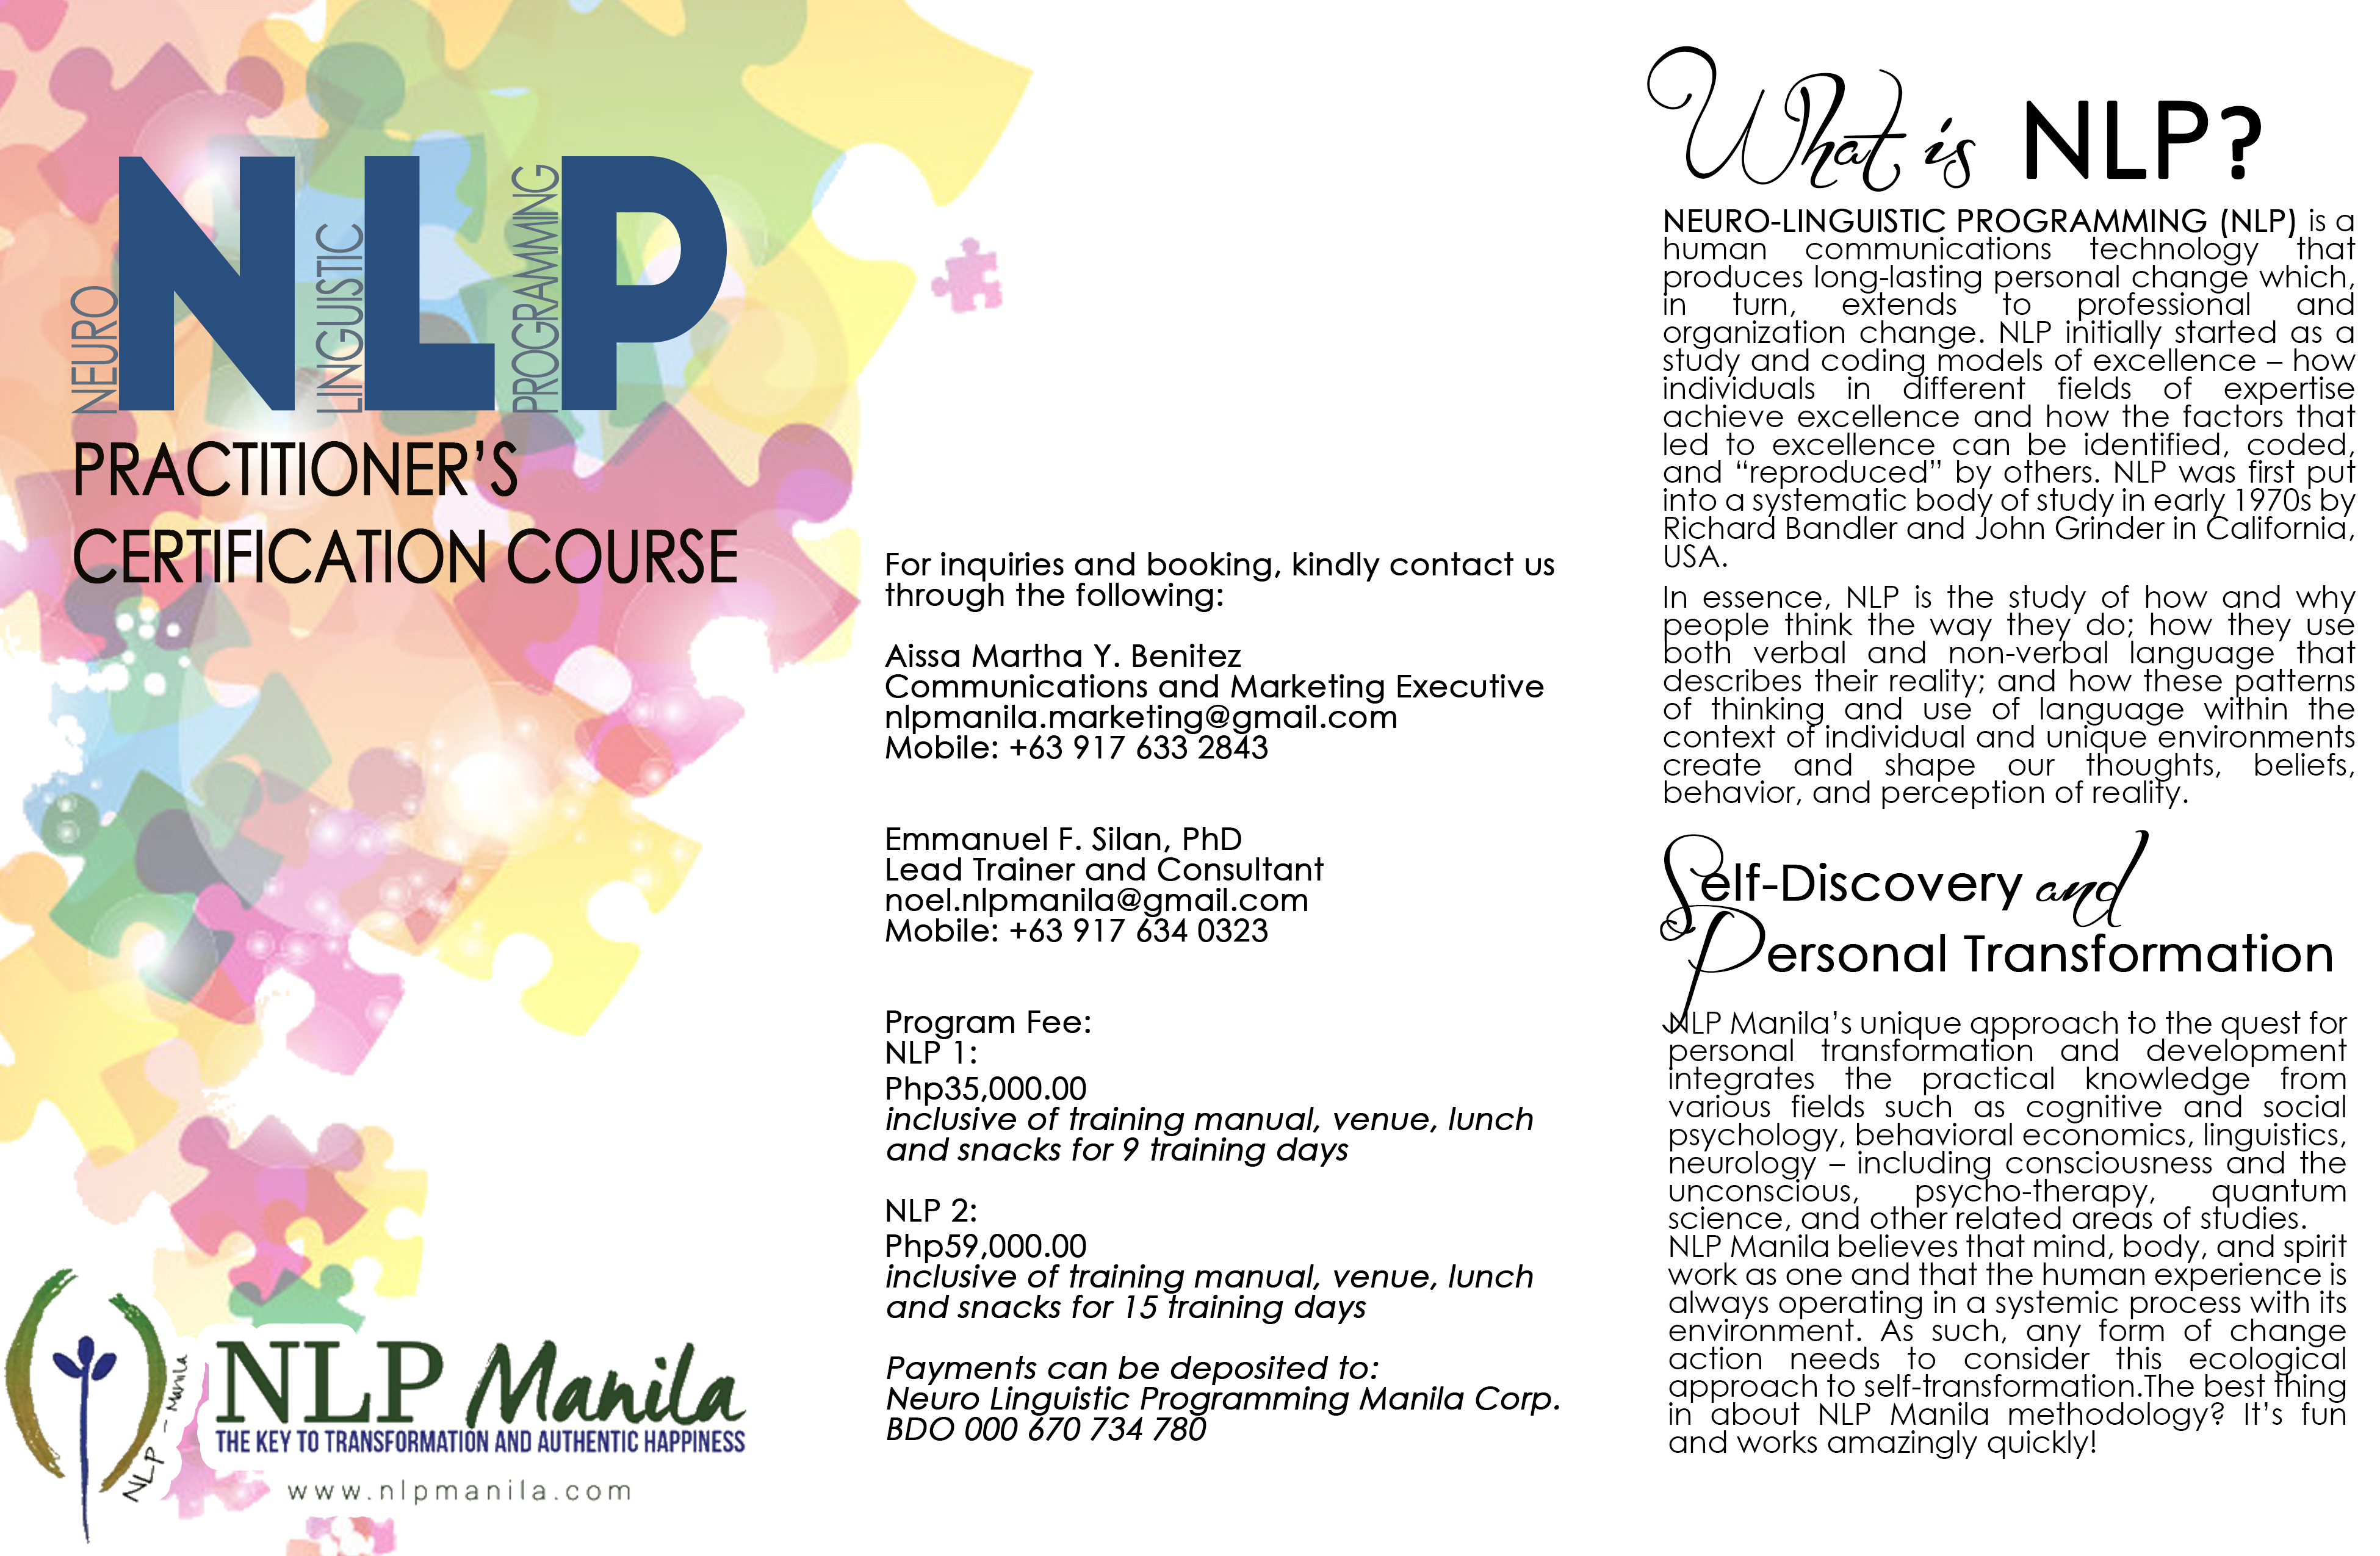 Nlp 1 The Foundations Of Communication And Change An Intensive 9